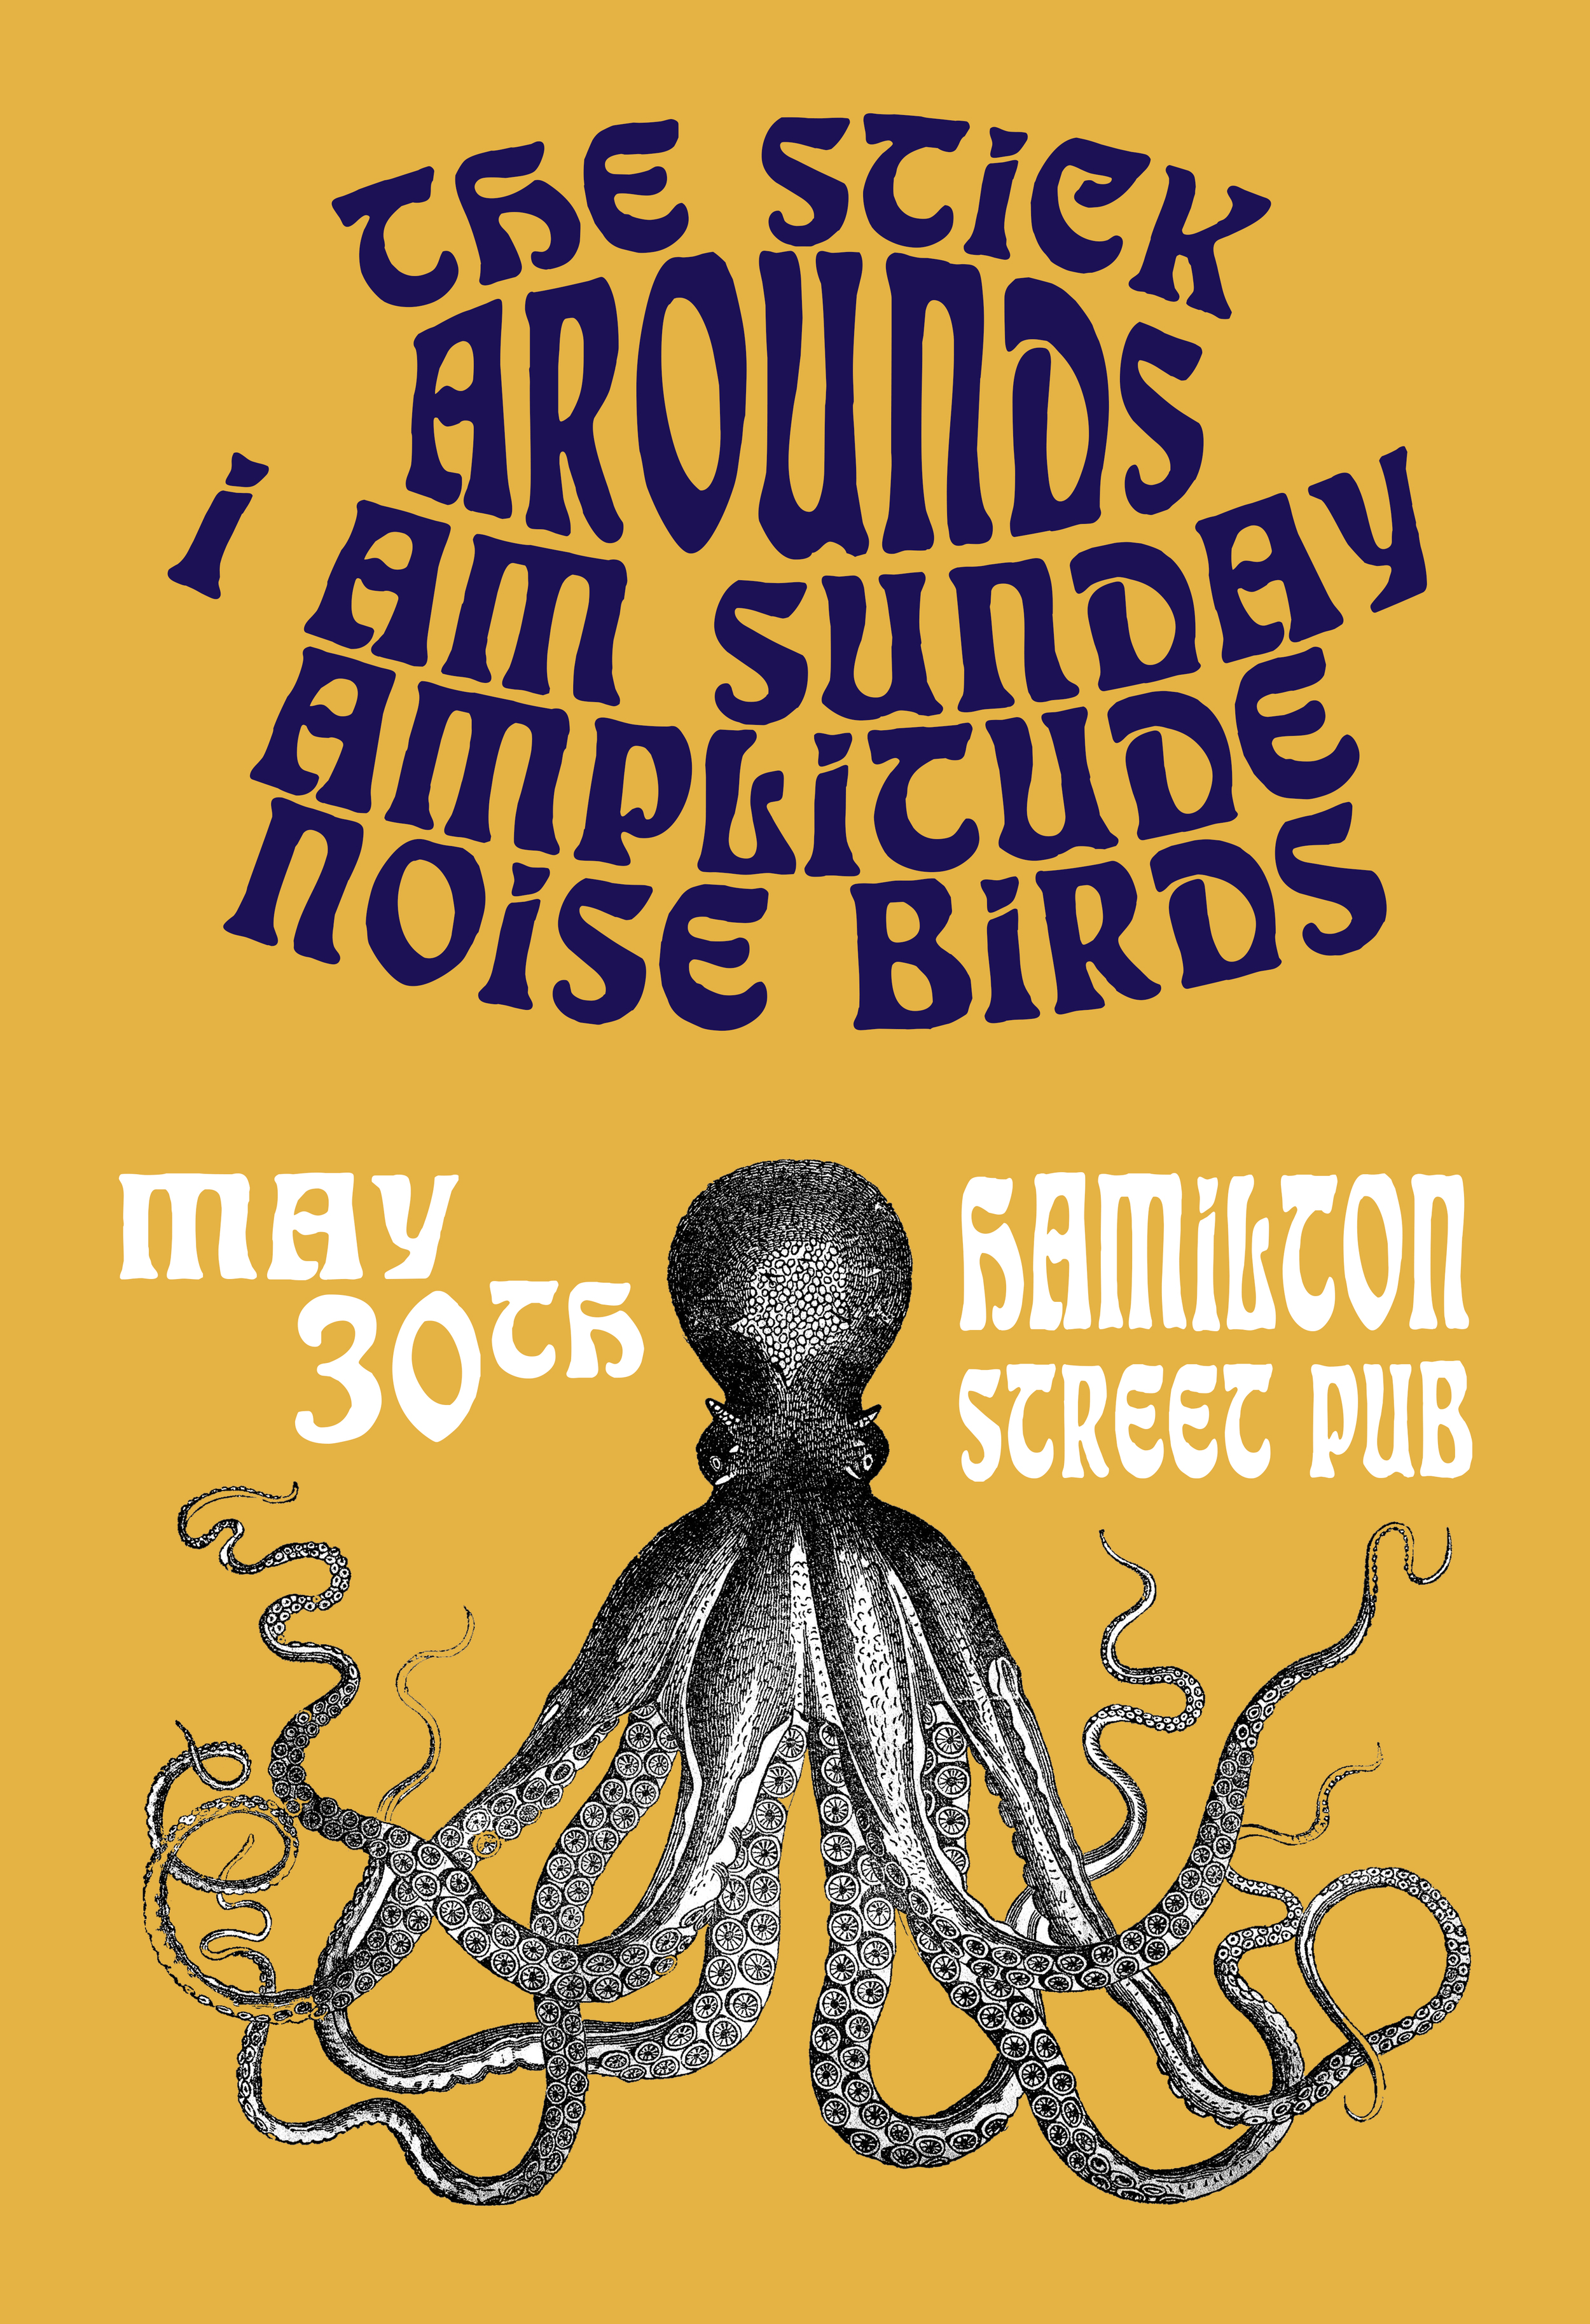 Stick Arounds Hamilton Street May 30 Poster.jpg